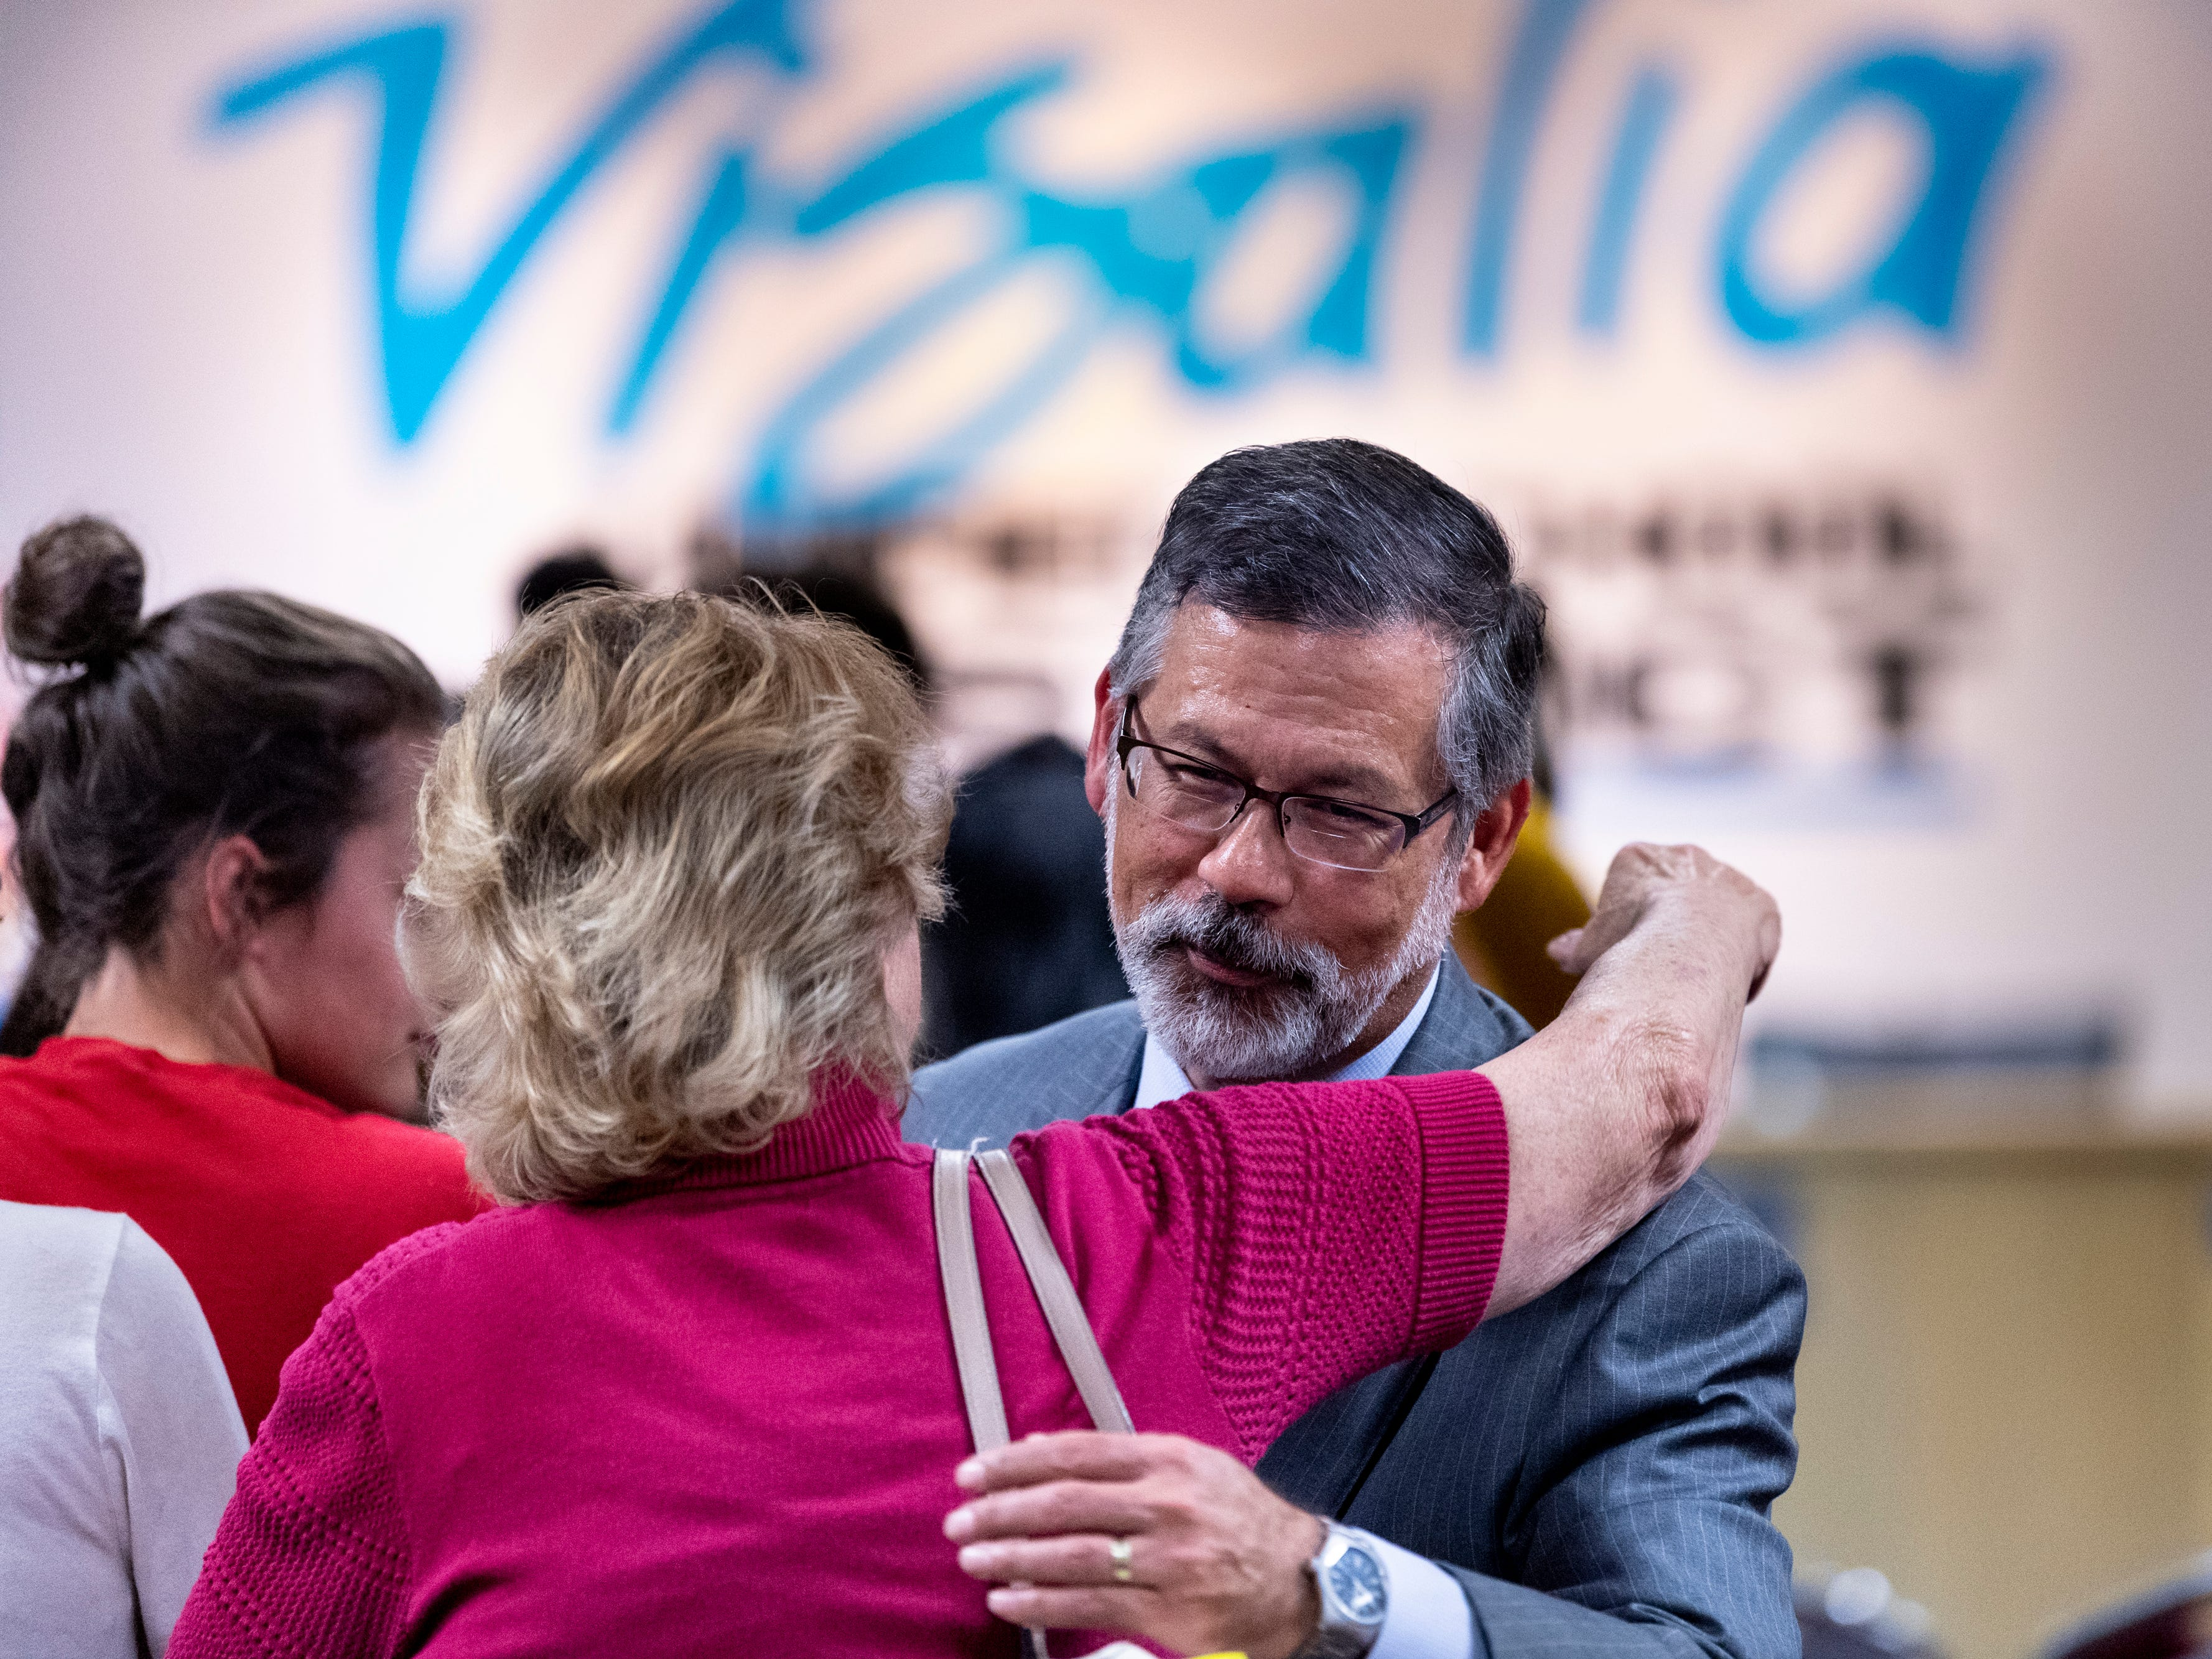 Dozens lined up to offer their support to Superintendent Todd Oto, right, after the Visalia Unified School board announced they had voted to accept his resignation on Tuesday, May 7, 2019.